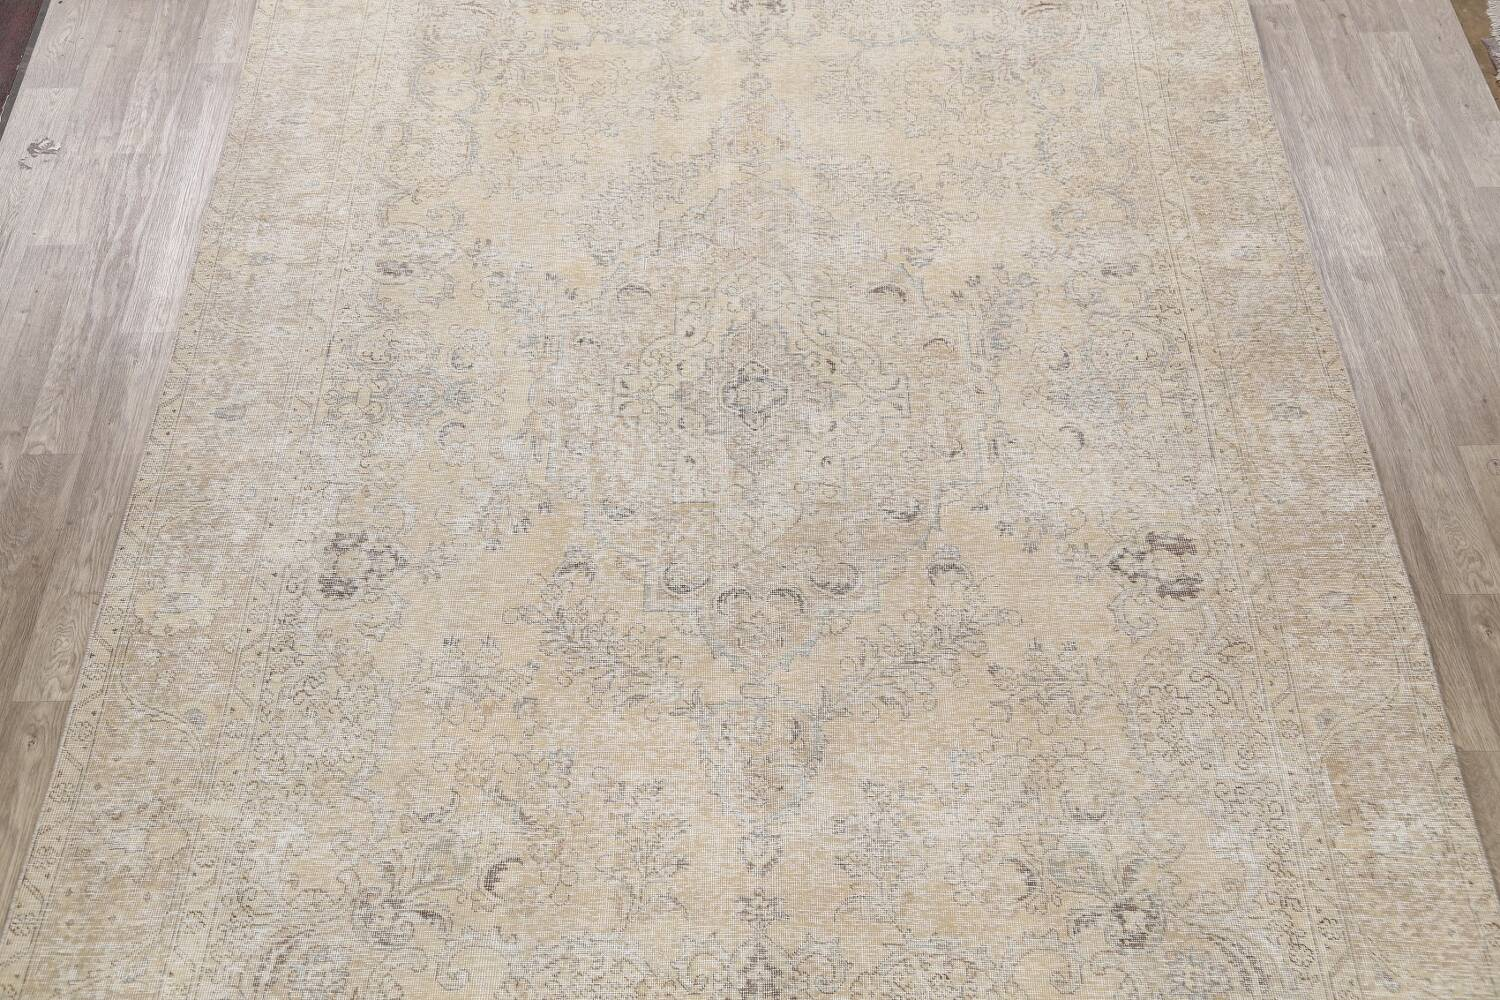 Antique Muted Floral Tabriz Persian Area Rug 9x13 image 3